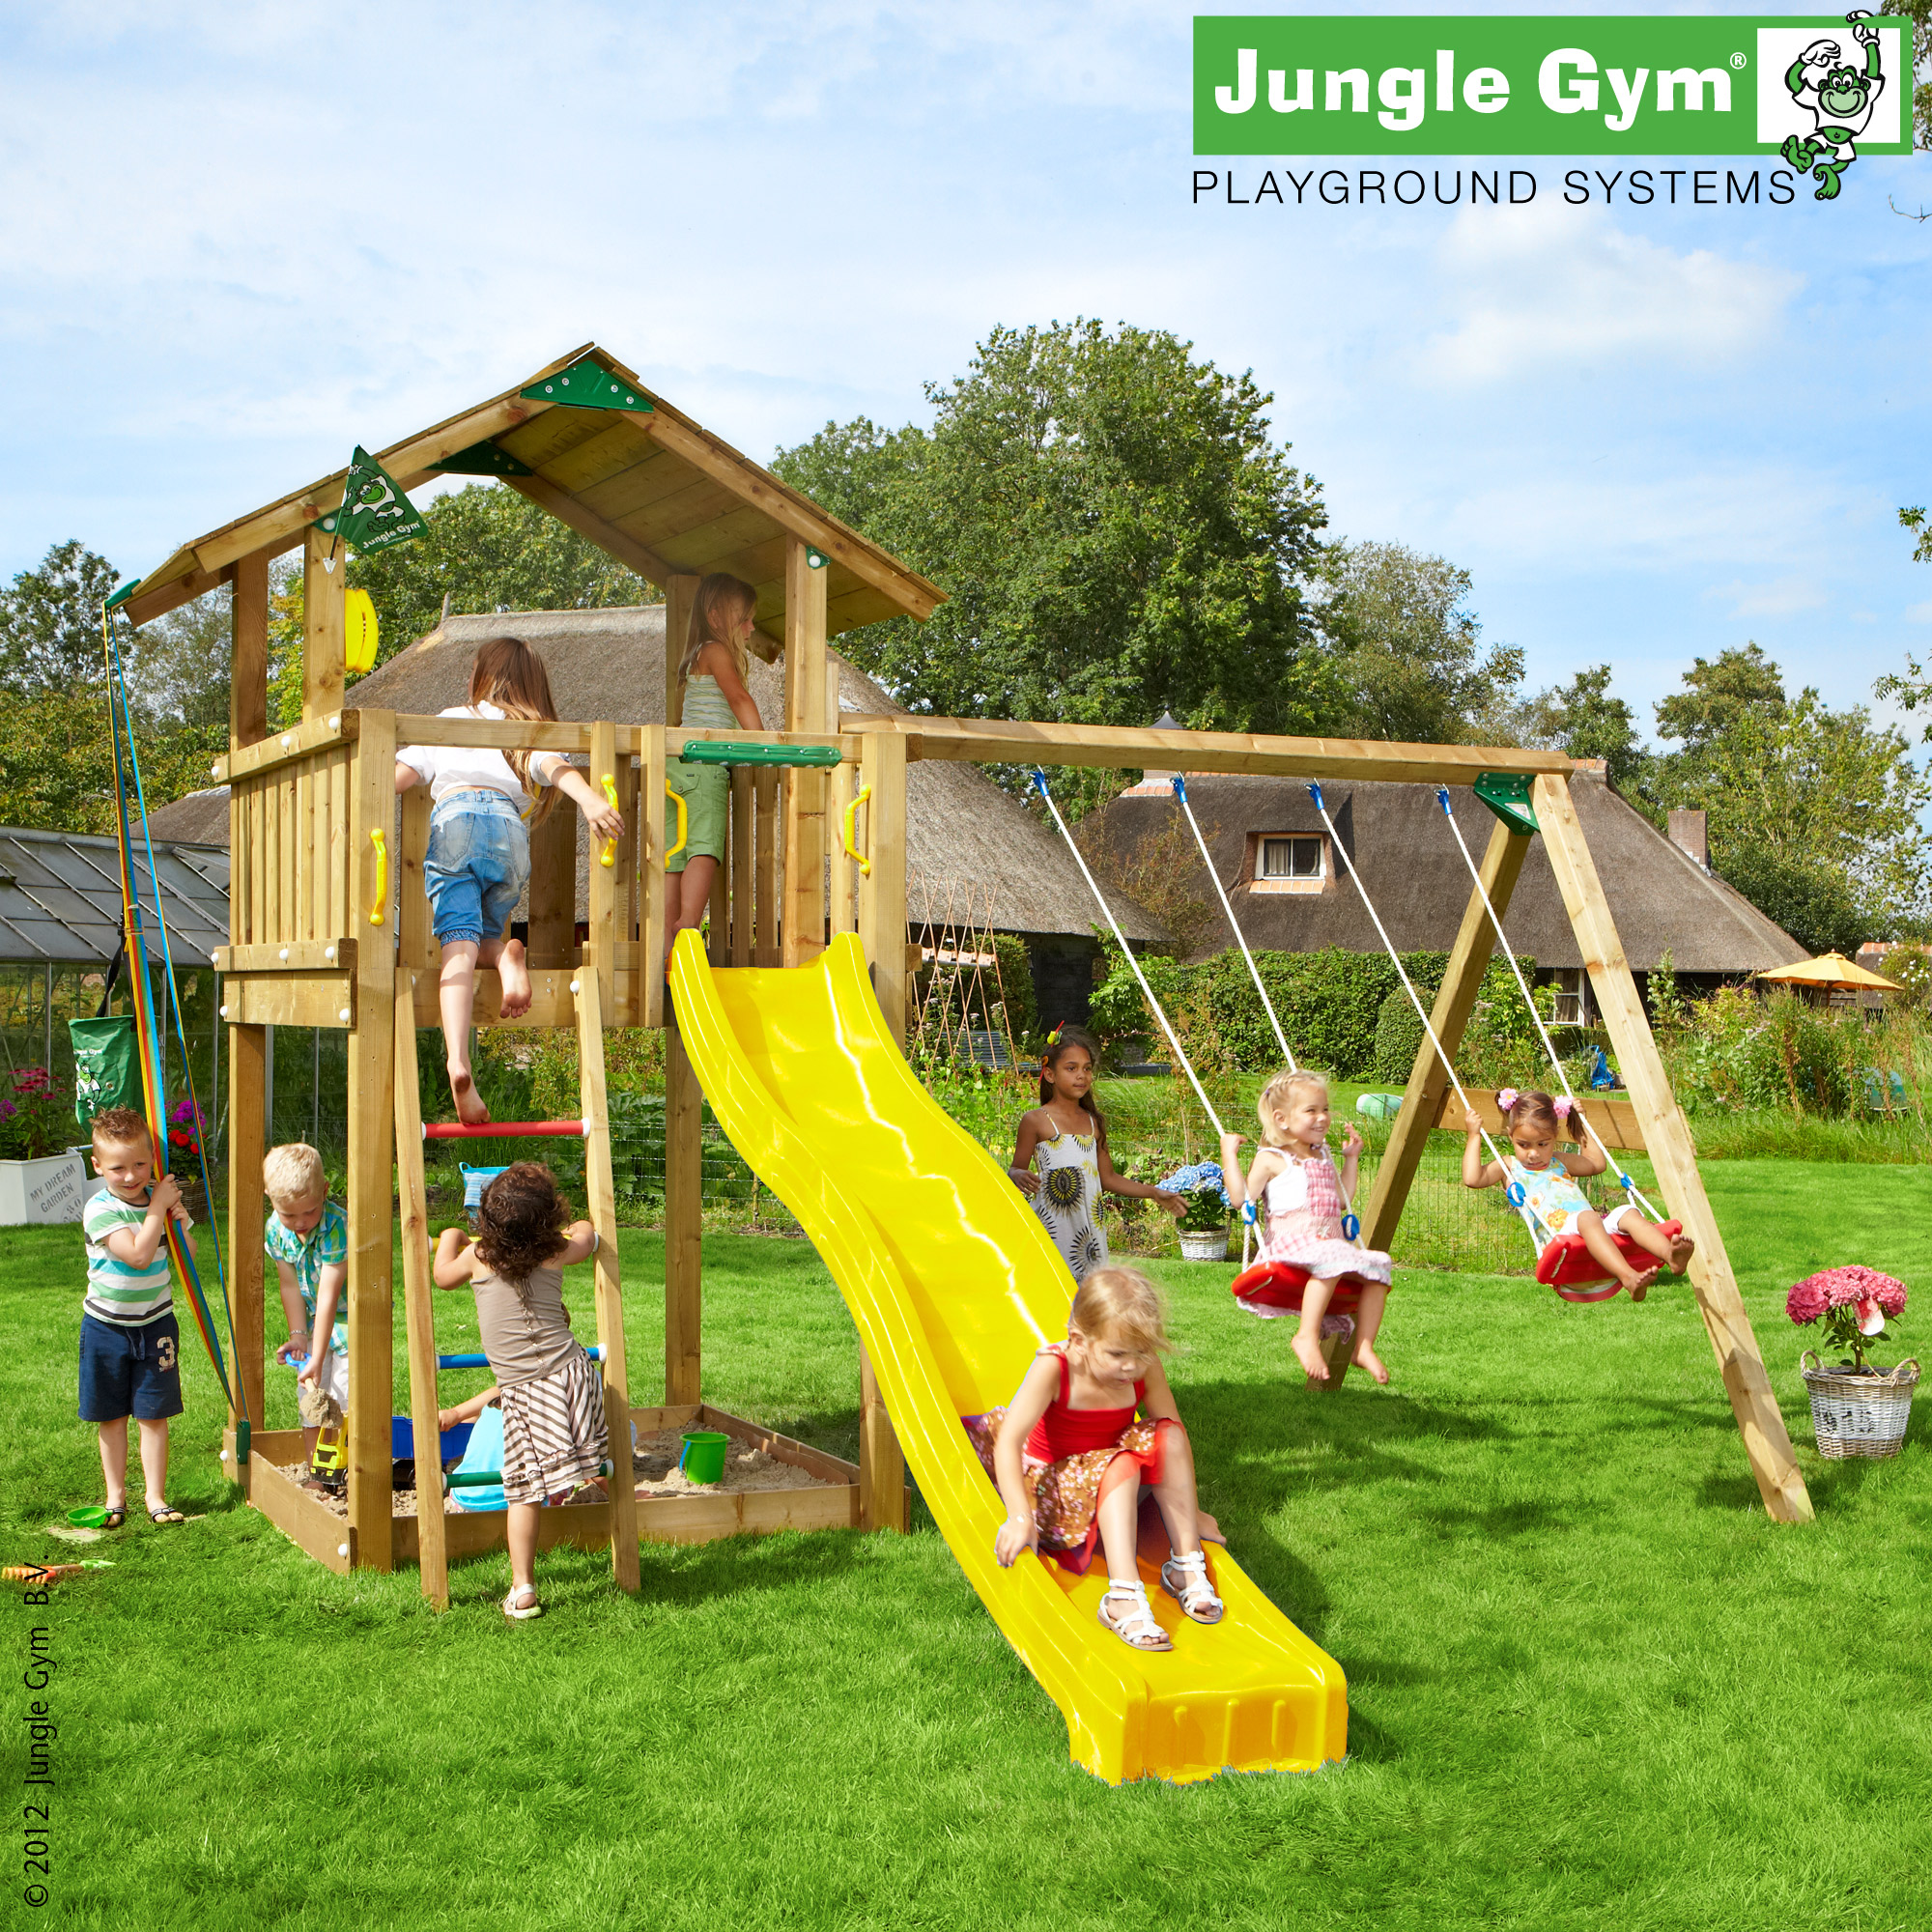 jungle gym hannas chalet spielturm set mit schaukel rutsche leiter holzturm ebay. Black Bedroom Furniture Sets. Home Design Ideas